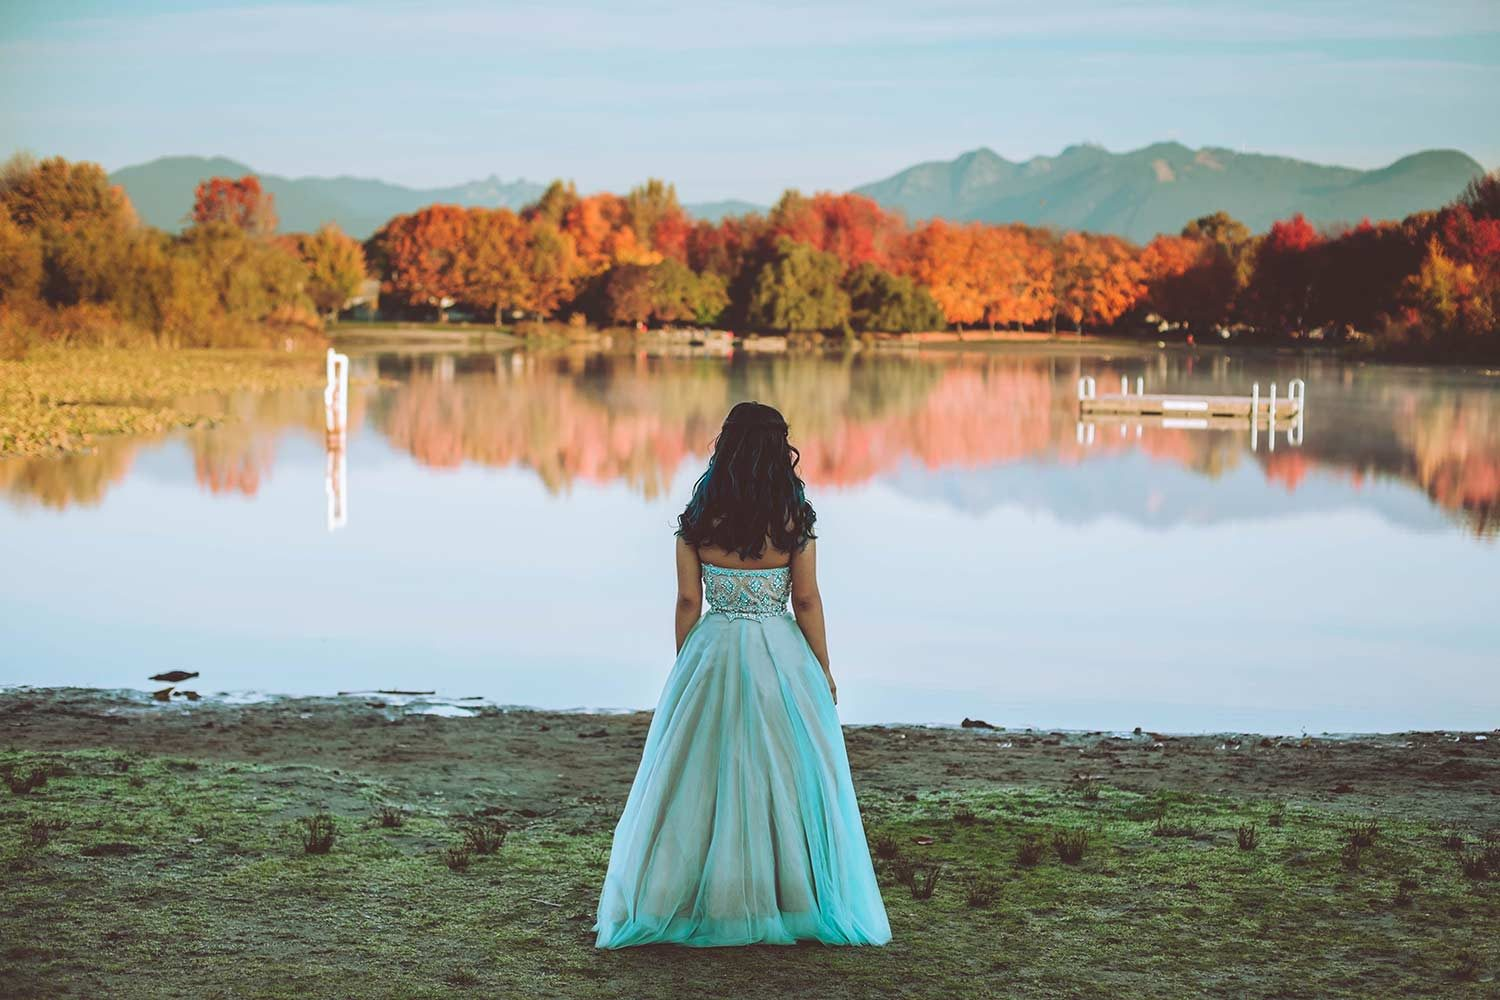 sunrise, trout lake, grad gown, girl, teen, fashion, autumn